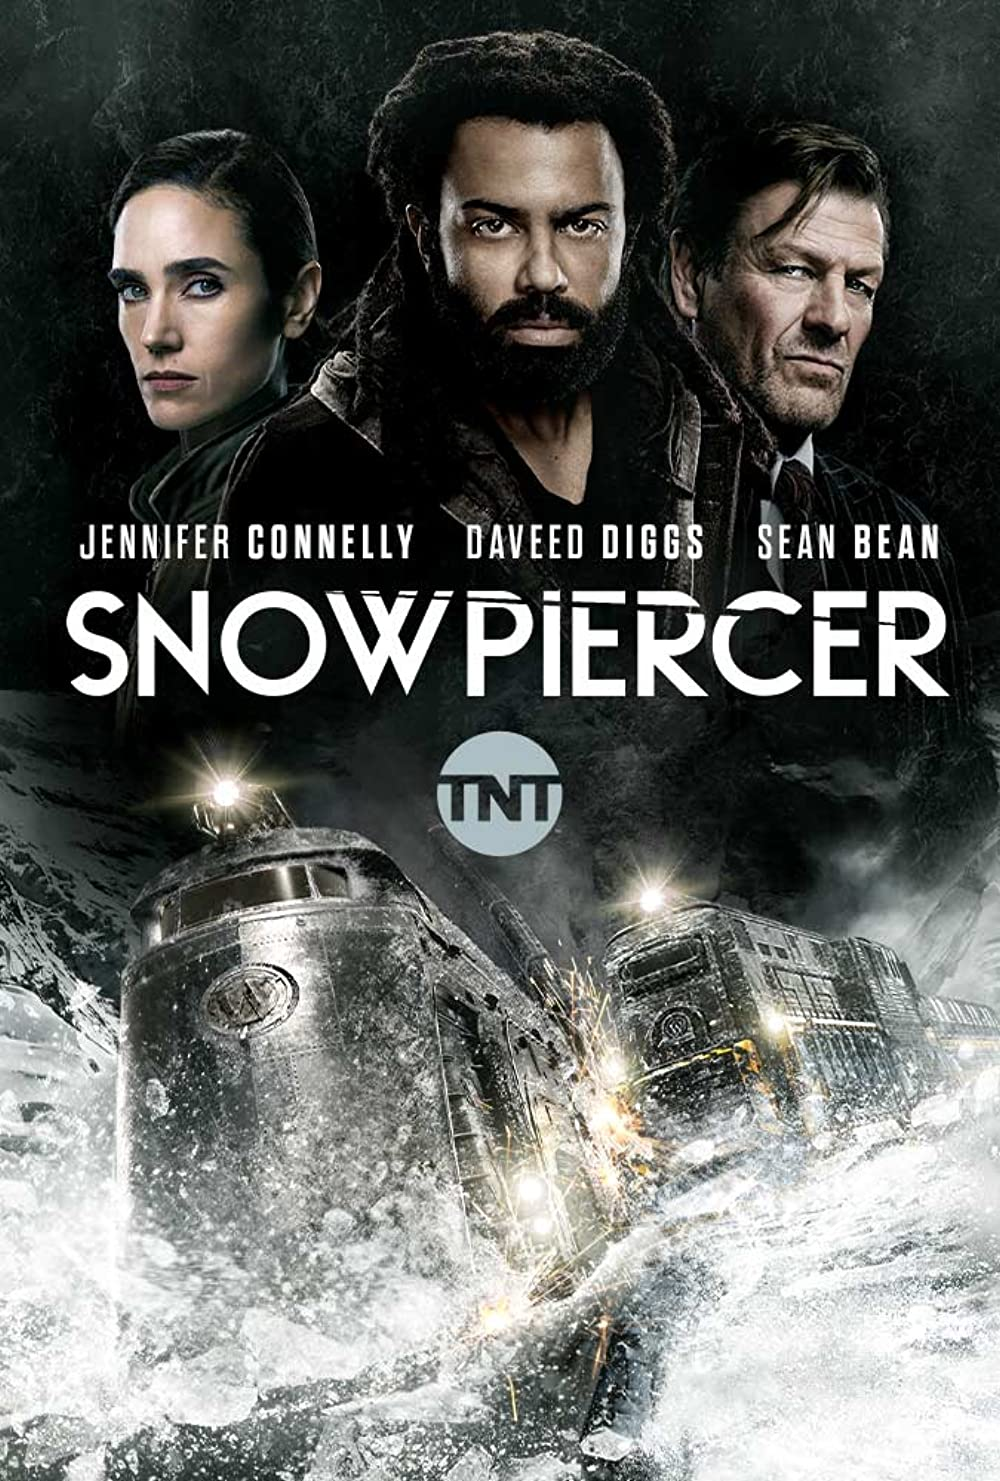 Snowpiercer 2021 S02EP01 Hindi Dual Audio NF Series 720p HDRip 350MB Download